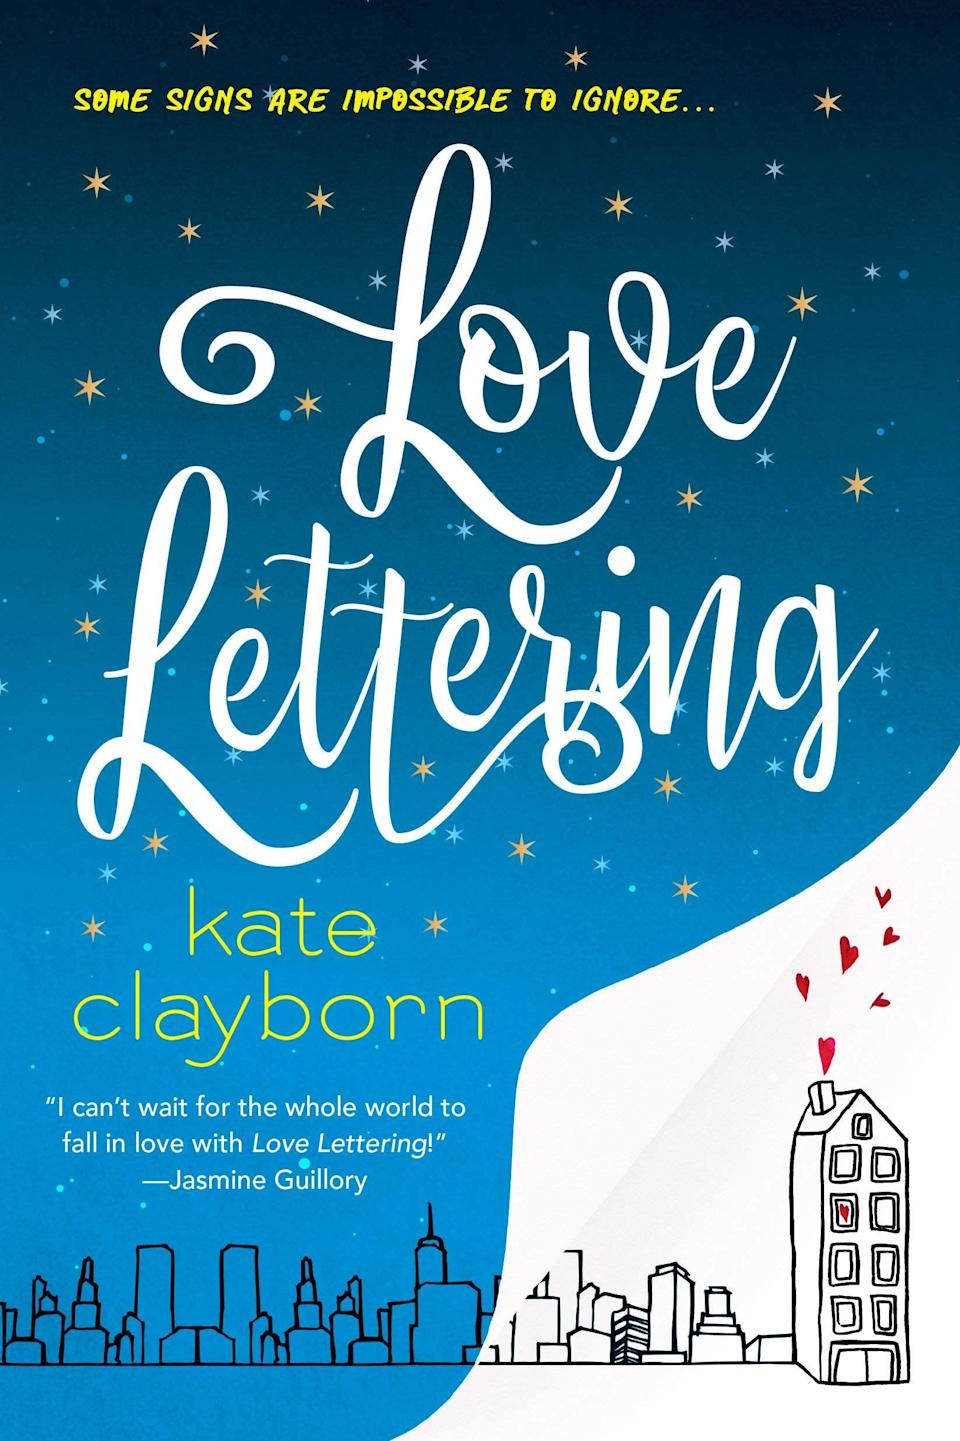 "<p>Intricate hand lettering and signage typography take center stage in <span><strong>Love Lettering</strong> by Kate Clayborn</span> ($9). In the story, Meg Mackworth is a professional hand letterer who customizes everything from <a class=""link rapid-noclick-resp"" href=""https://www.popsugar.co.uk/Wedding"" rel=""nofollow noopener"" target=""_blank"" data-ylk=""slk:wedding"">wedding</a> programs to daily planners for her clients. When a past client, Reid Sutherland, questions her about hiding a message in his wedding program, Meg expects a confrontation - what she doesn't expect is an unlikely friendship.</p> <p>Kate Clayborn has such a fun and imaginative way with storytelling, and knows how to make even the smallest of facial expressions come alive on the page. The love story between Meg and Reid is swoon-worthy, charming, and very unique. Design-minded folks will enjoy how typography is woven into every aspect of this story, from how Meg sees the world around her to the ways she connects with Reid.</p>"